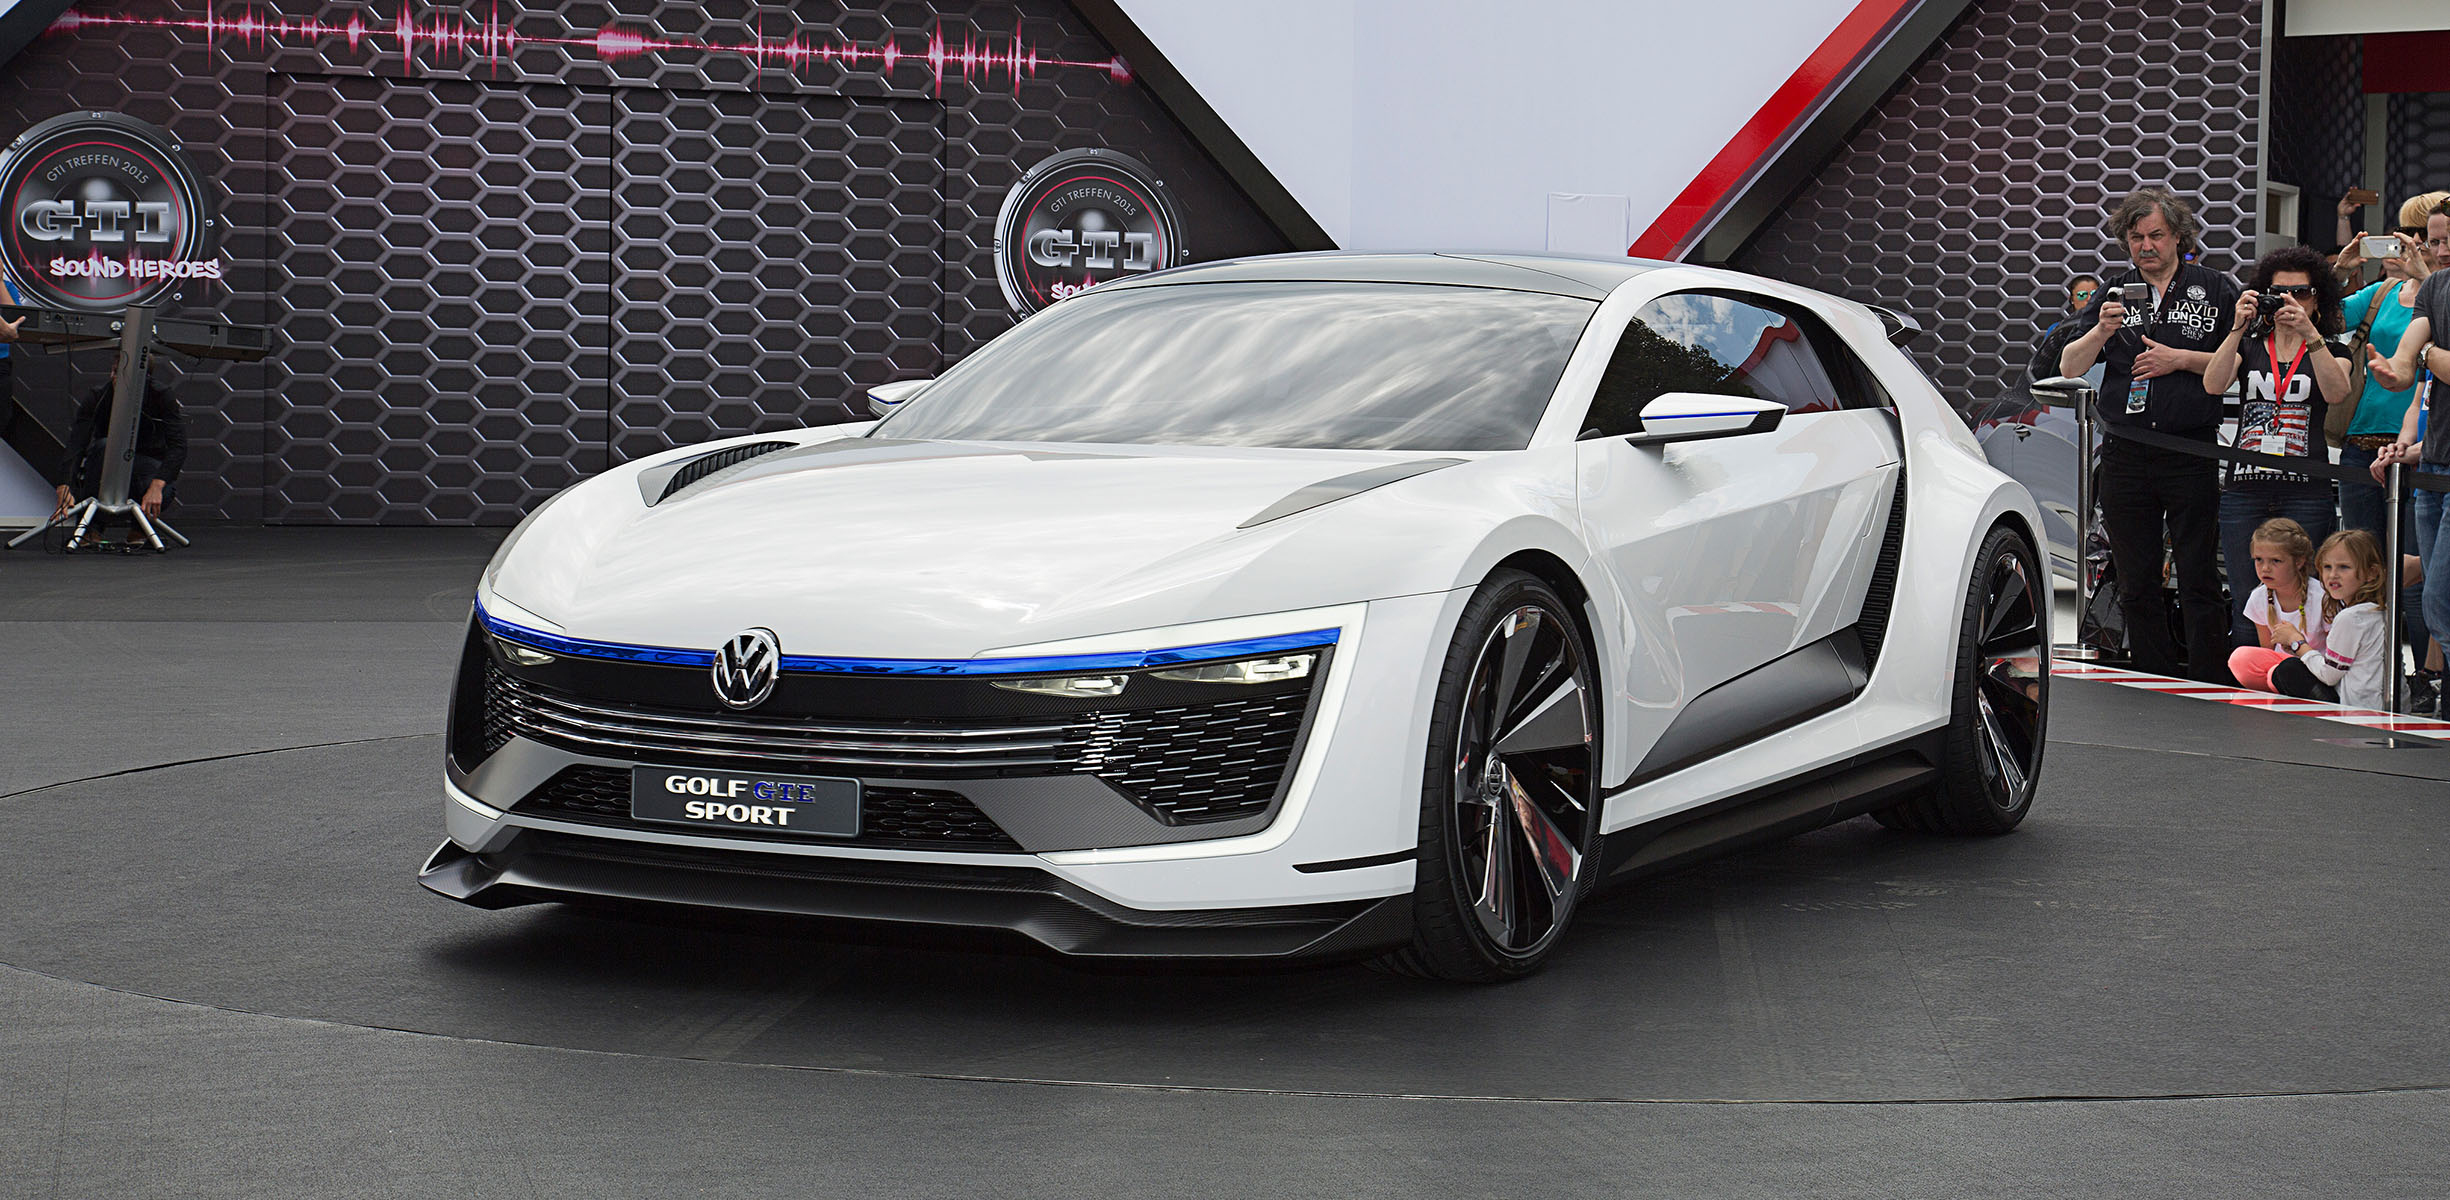 Volkswagen Golf Gte Sport Concept Debuts At Worthersee Caradvice